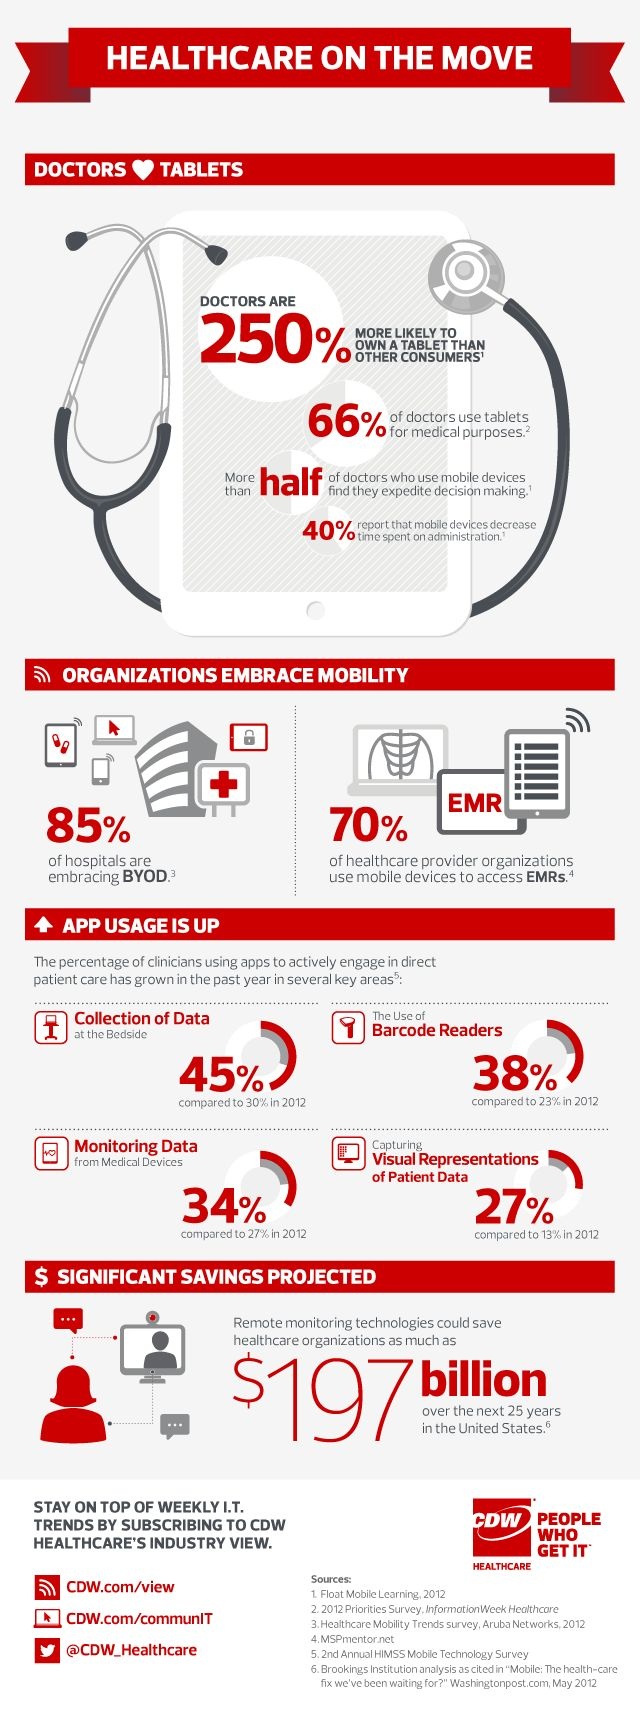 Healthcare on the move #healthcare #infographic